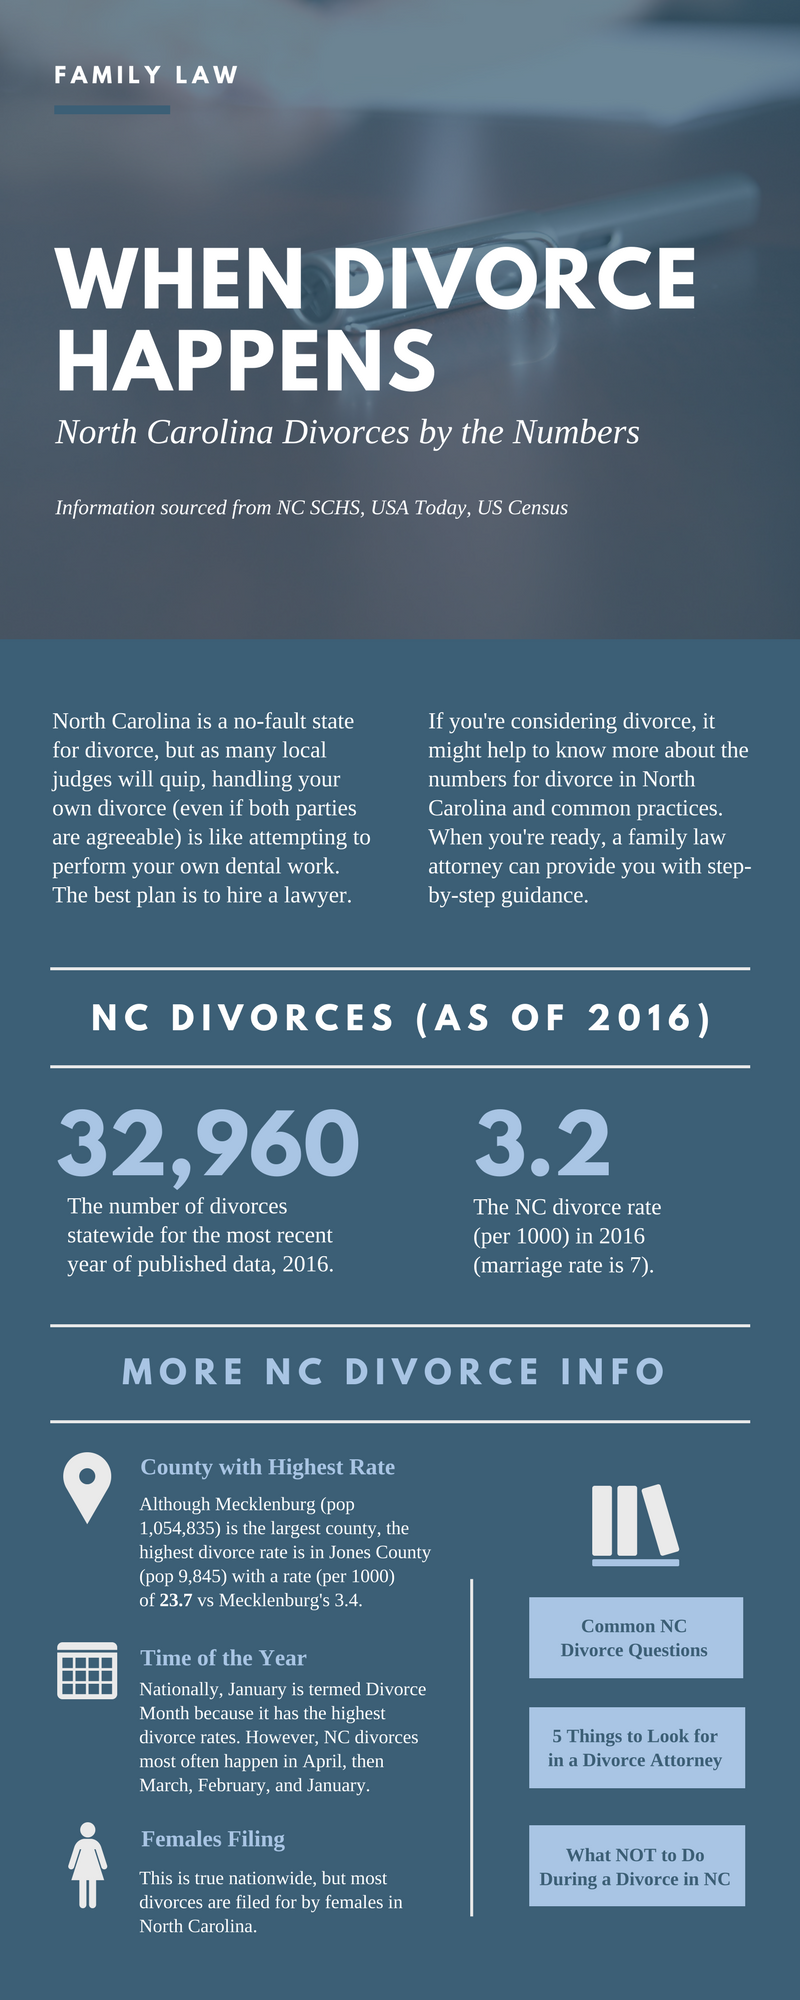 Divorce Statistics in NC